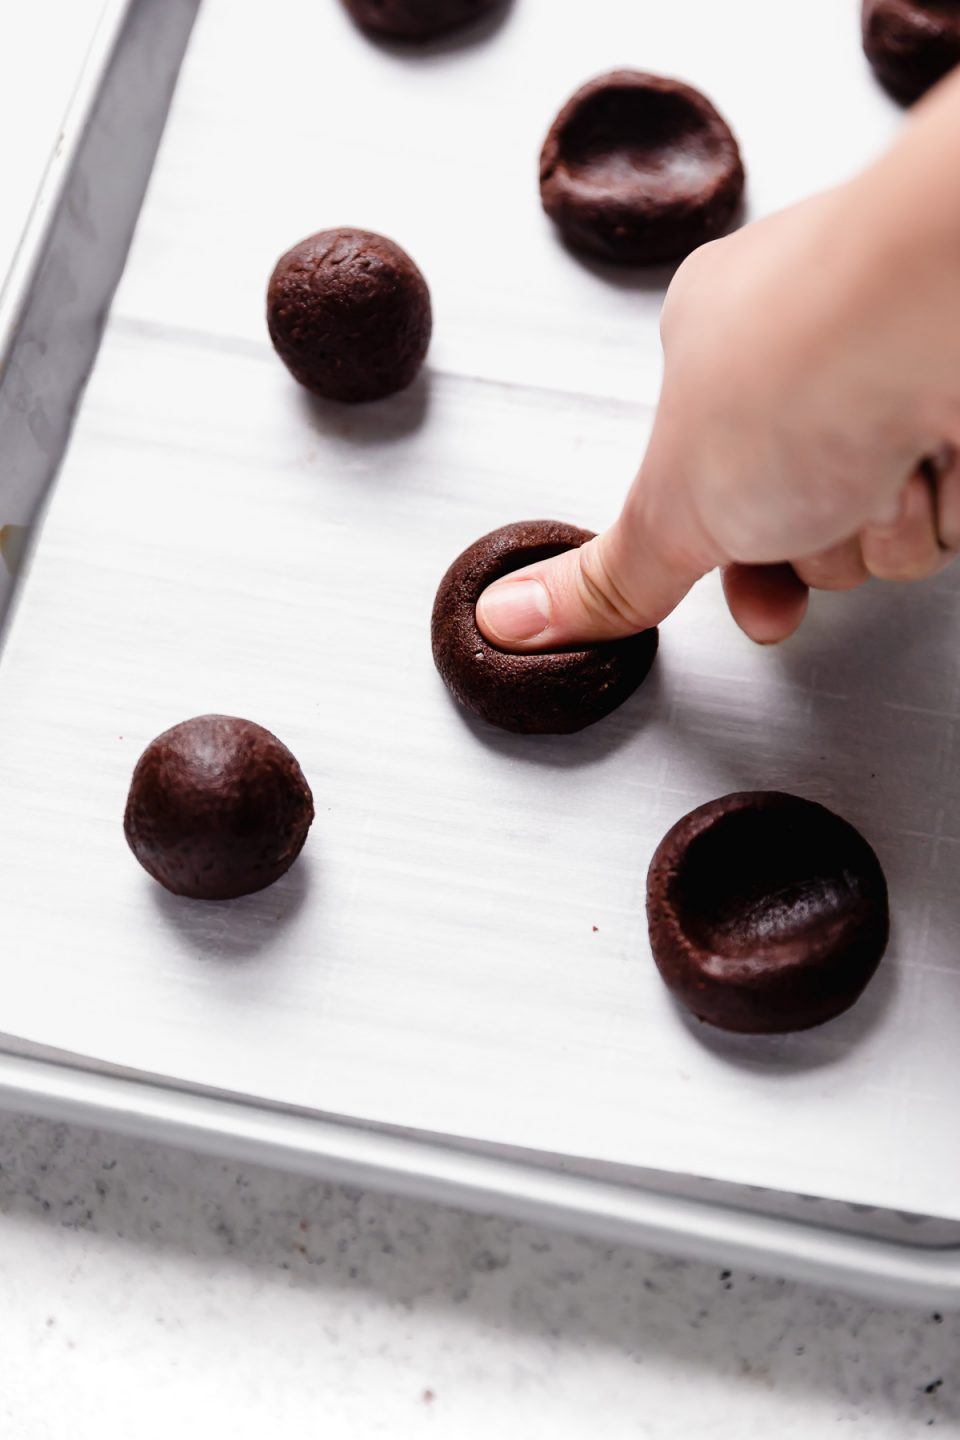 Chocolate thumbprint cookie dough balls placed on a parchment-lined baking sheet. A woman's thumb is pressing down on one of the cookies to create an indentation in the center.